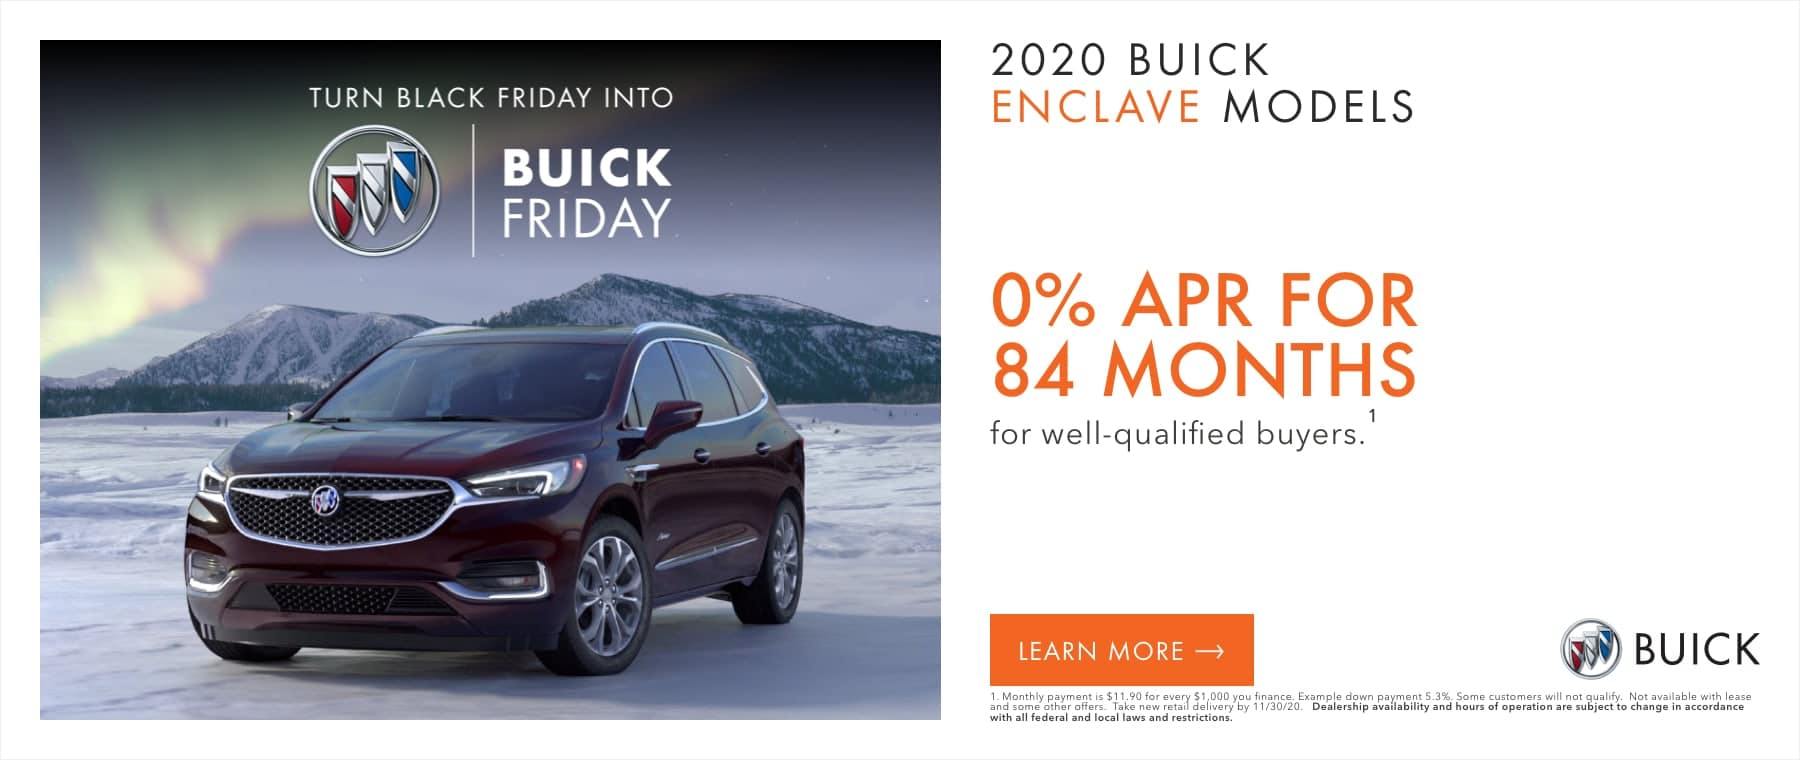 2020 BUICK ENCLAVE MODELS - 0% APR for 84 months for well-qualified buyers.1